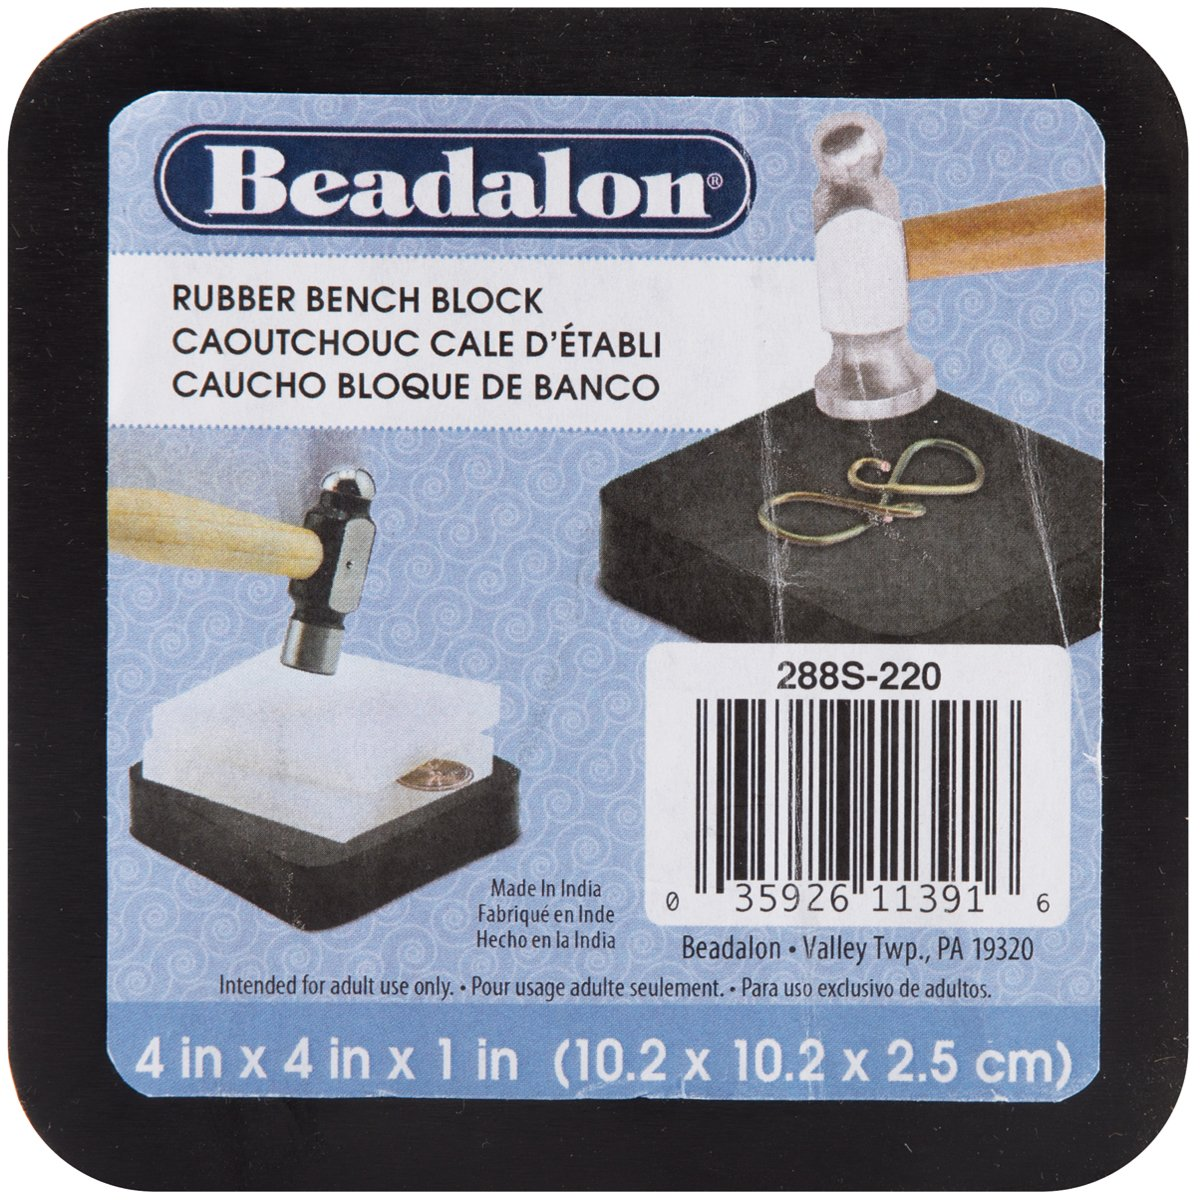 Beadalon Rubber Bench Block for Jewelry Making, 4 by 4-Inch, Black 228S-220